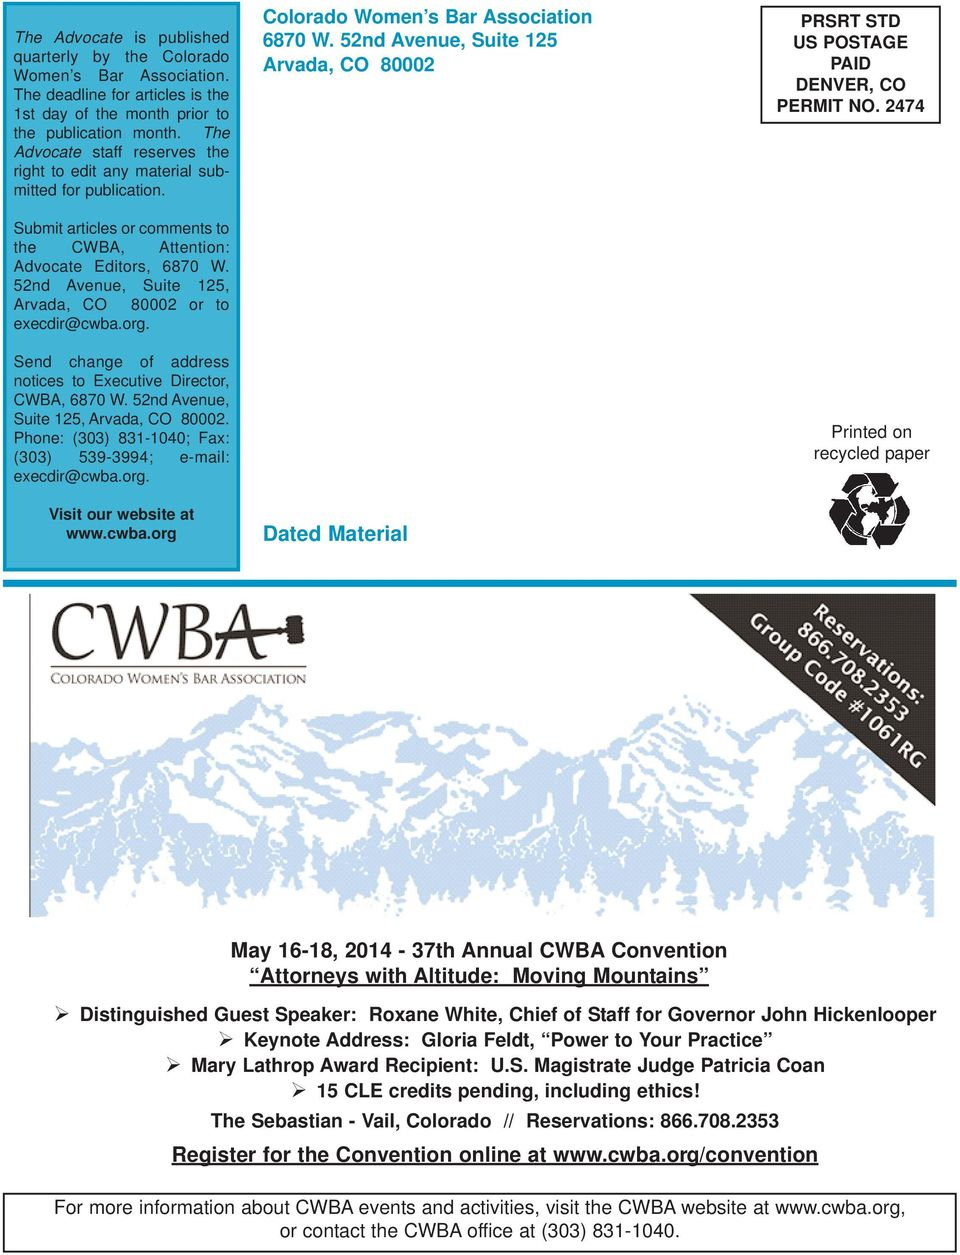 52nd Avenue, Suite 125, Arvada, CO 80002 or to execdir@cwba.org. Send change of address notices to Executive Director, CWBA, 6870 W. 52nd Avenue, Suite 125, Arvada, CO 80002.